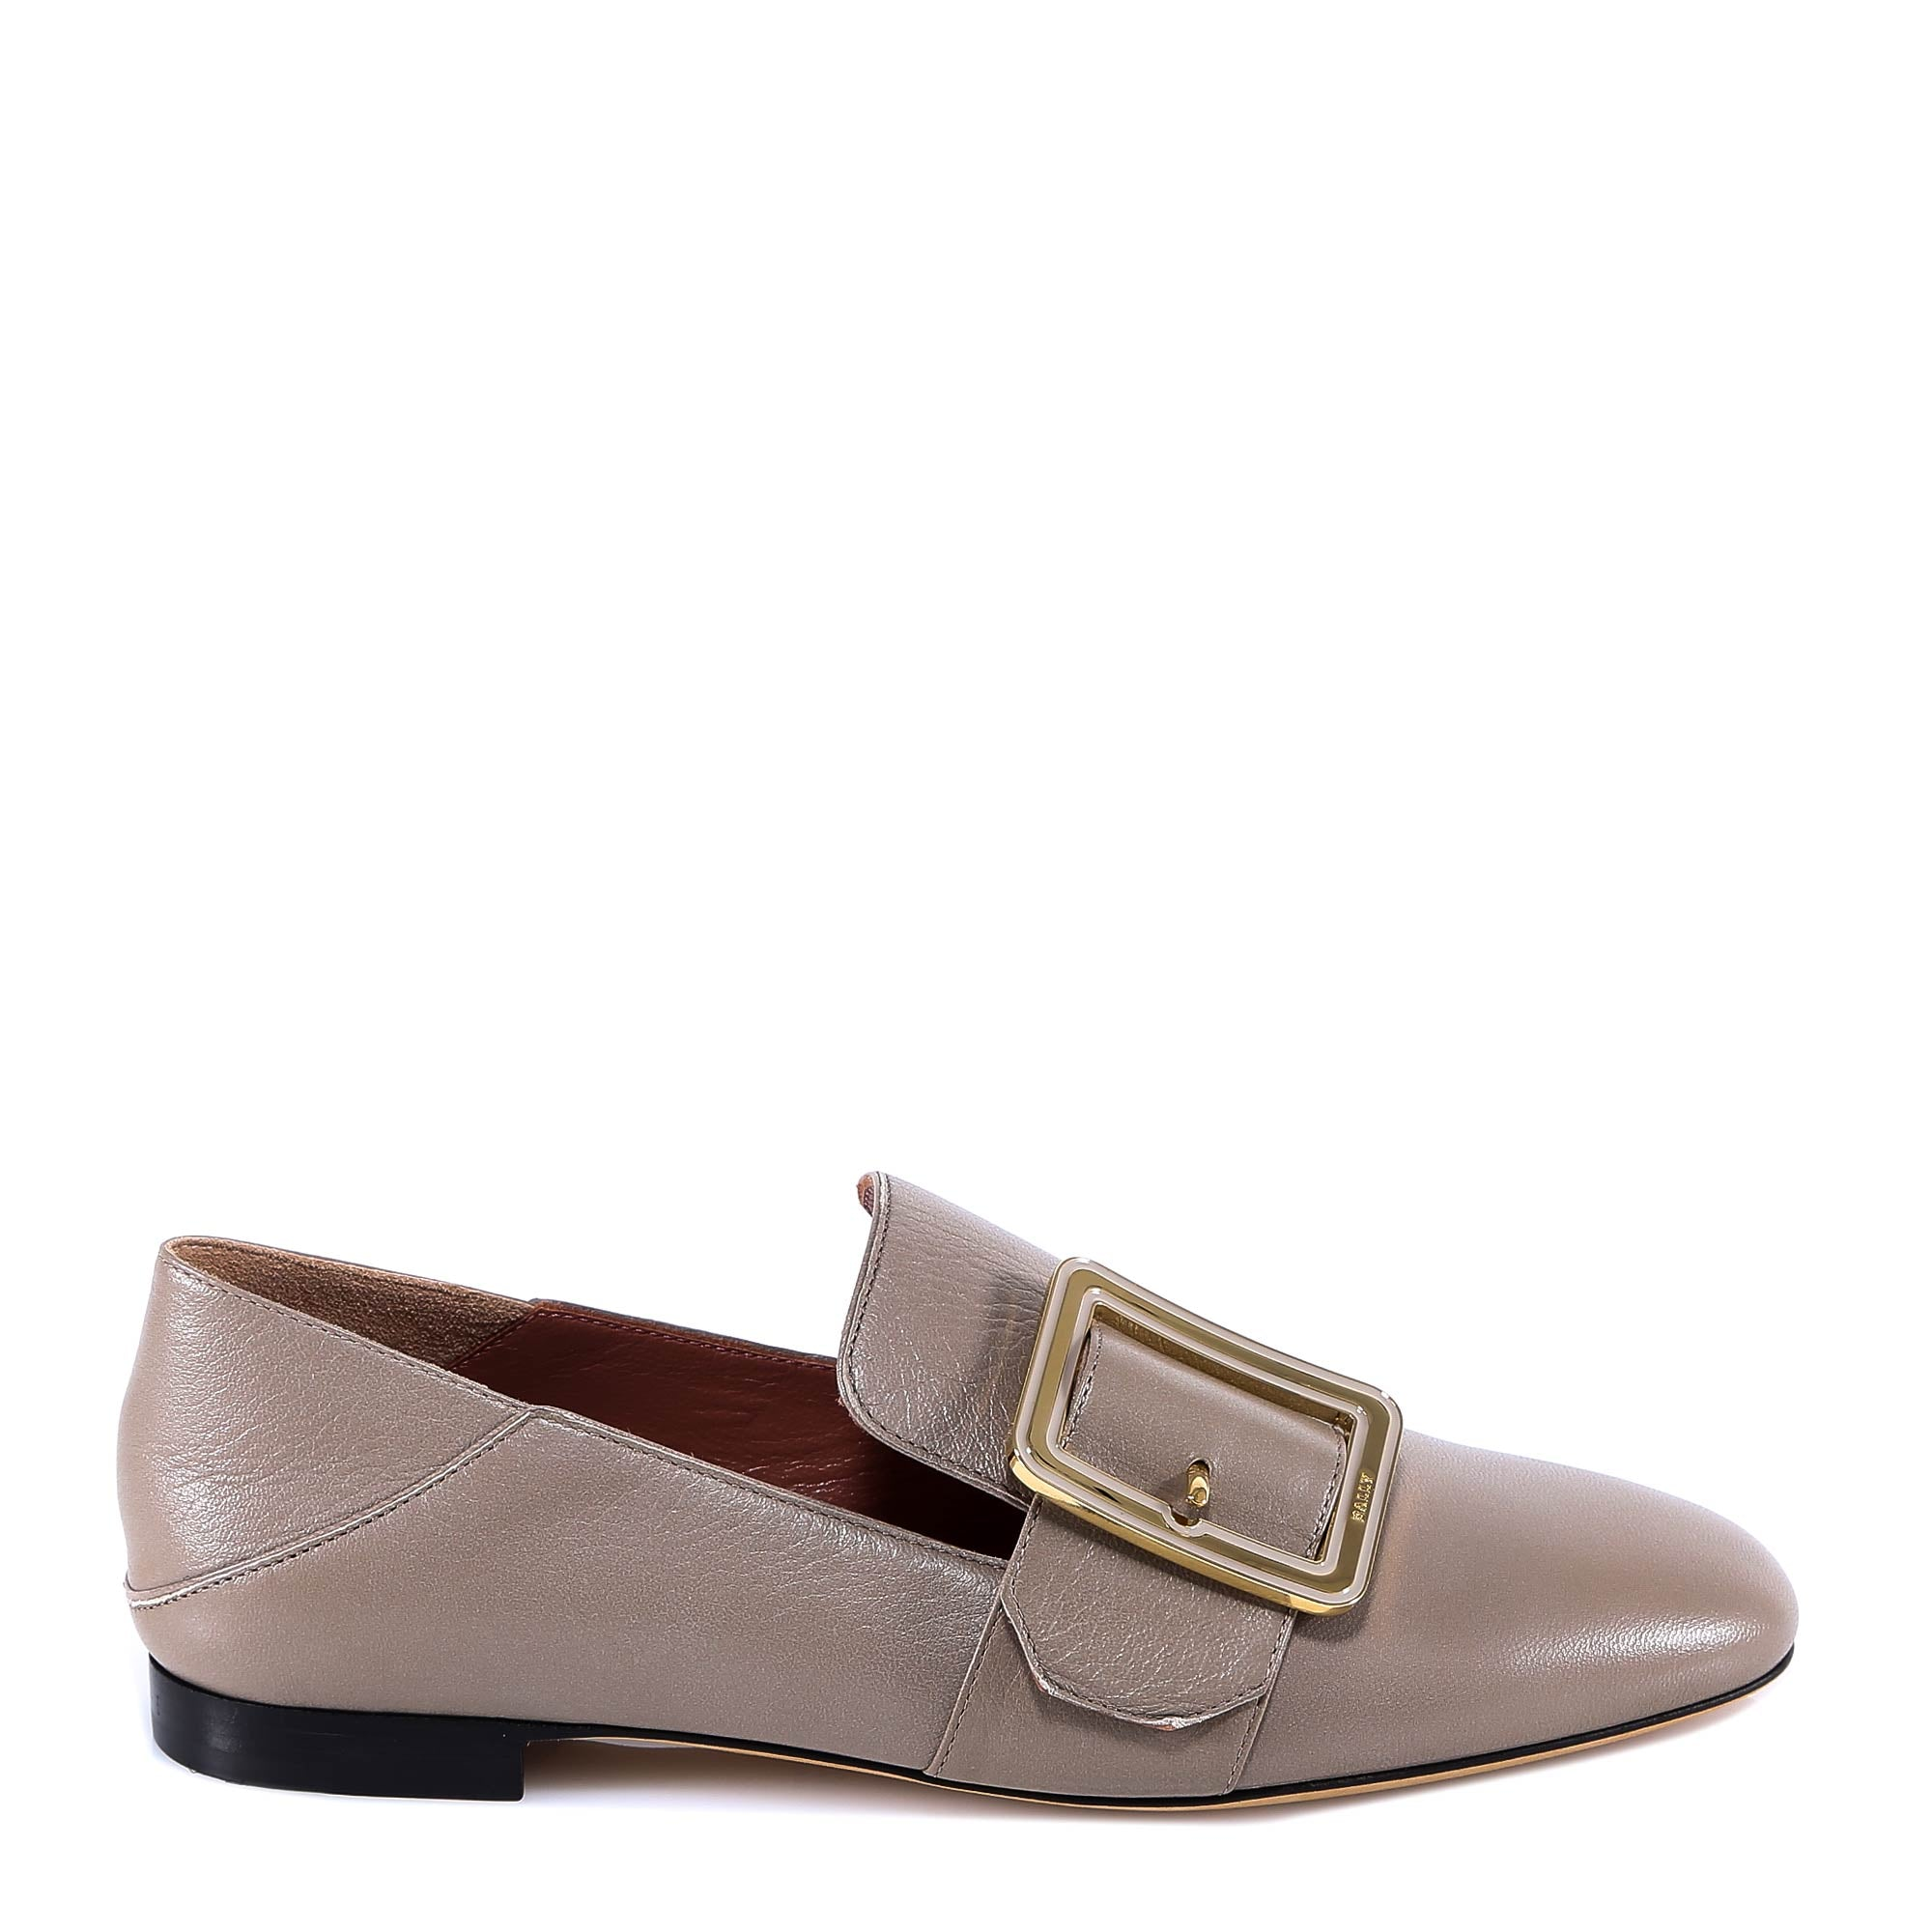 Bally Janelle Loafers, Grey